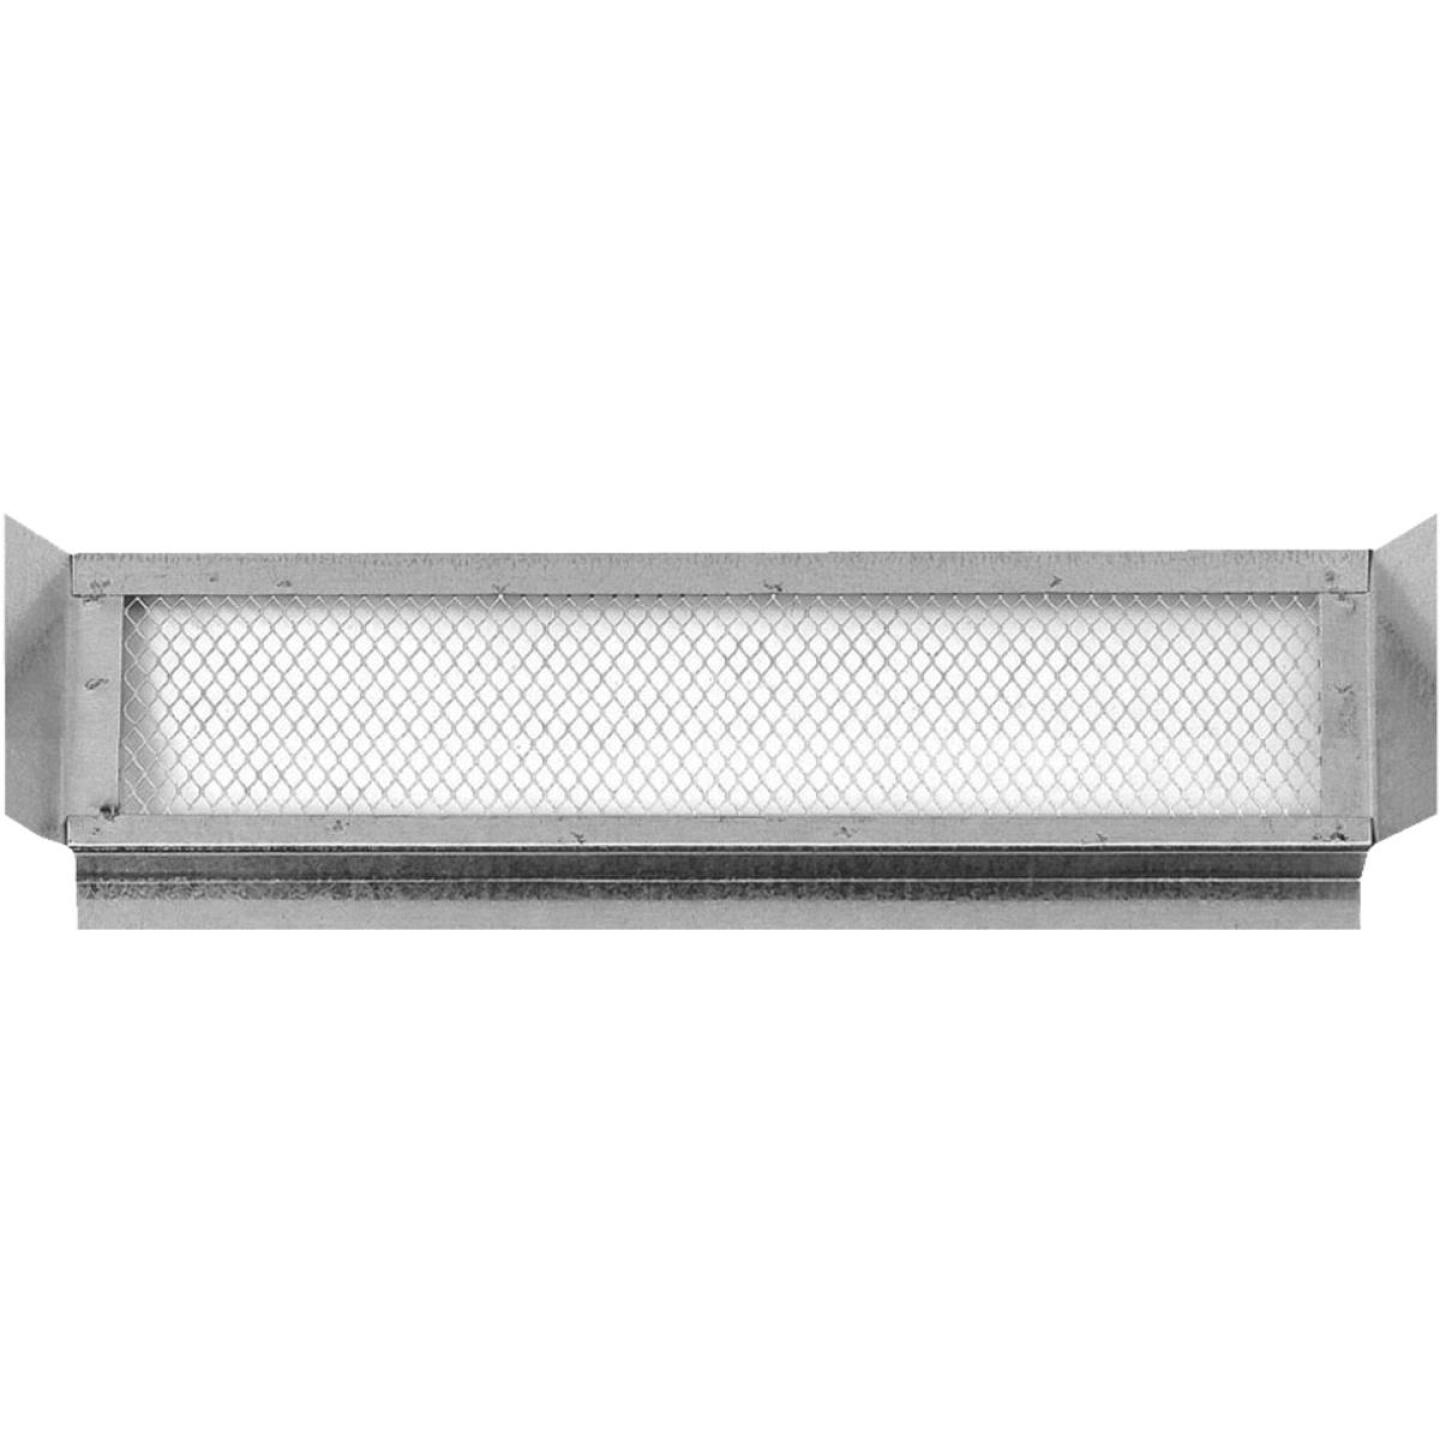 NorWesco 5-1/2 In. x 22 In. Eave Ventilator Image 1